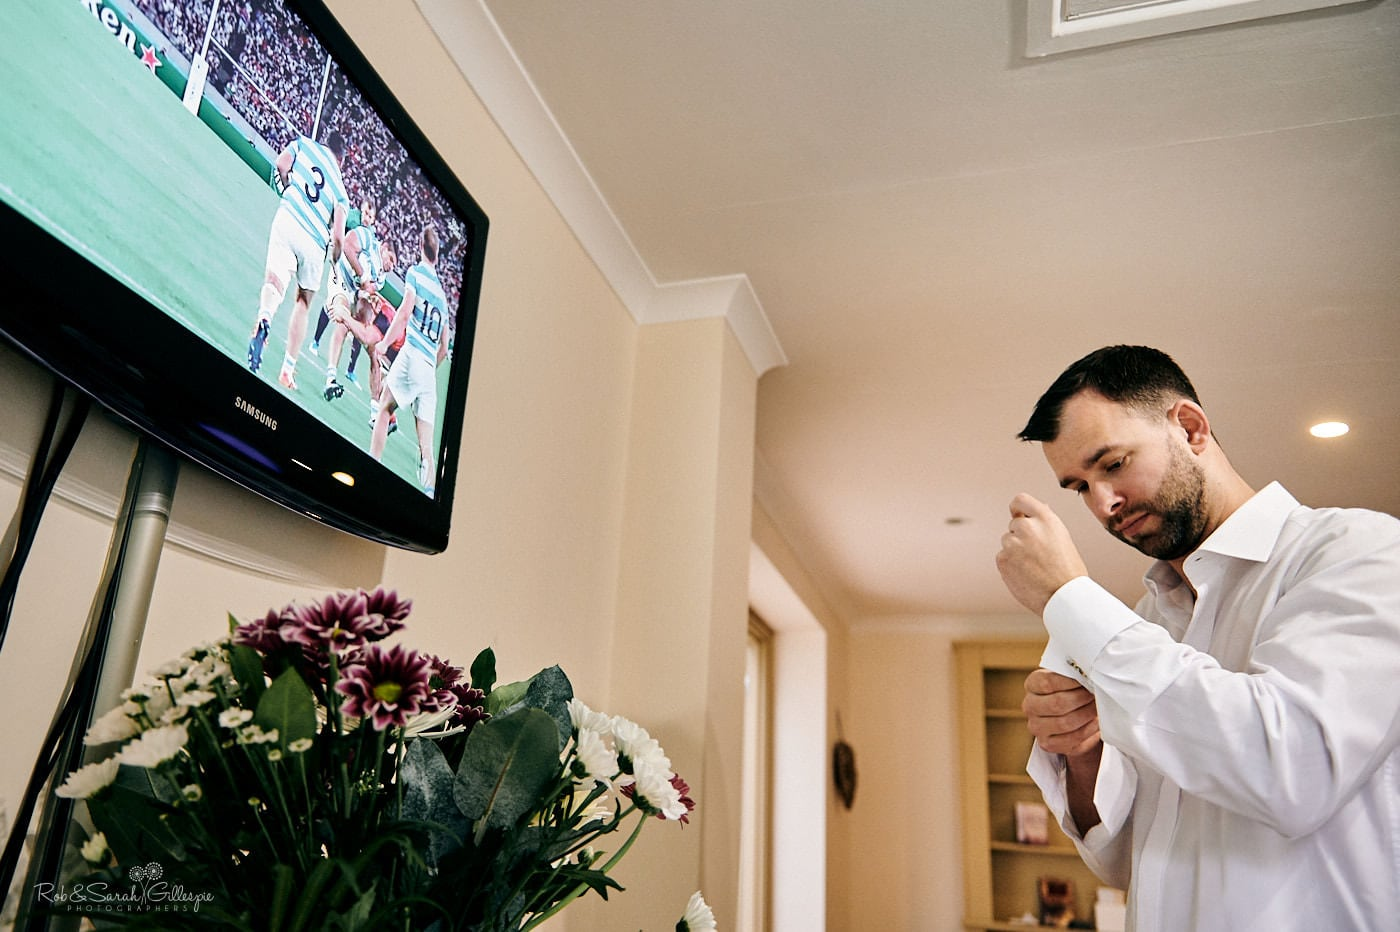 Groom prepares for wedding while watching rugby match on TV